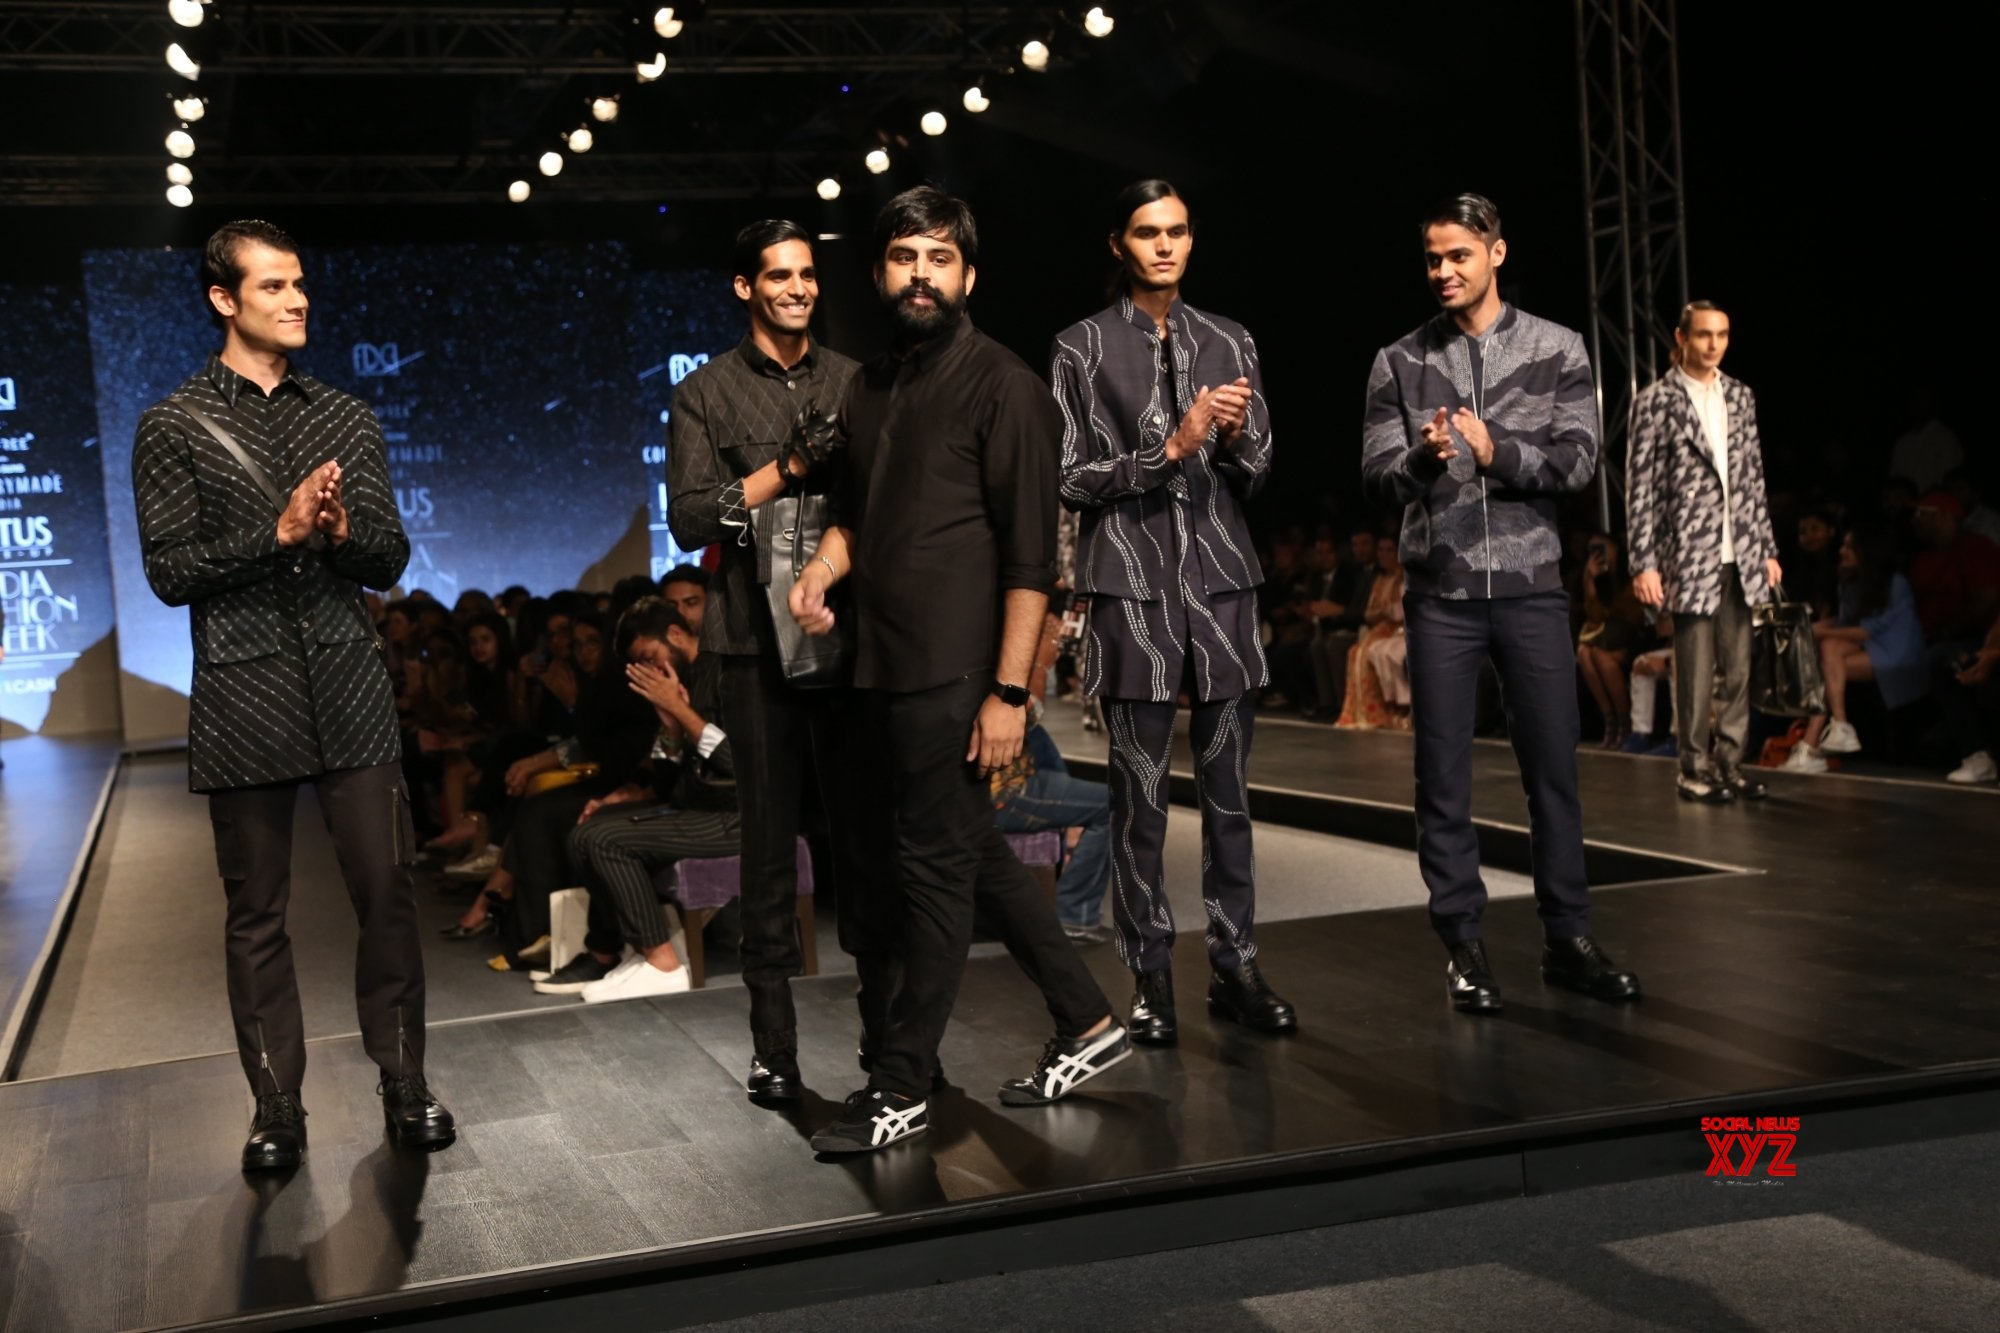 New Delhi: Lotus Make - up India Fashion Week - Day 4 - Countrymade's collection showcased #Gallery